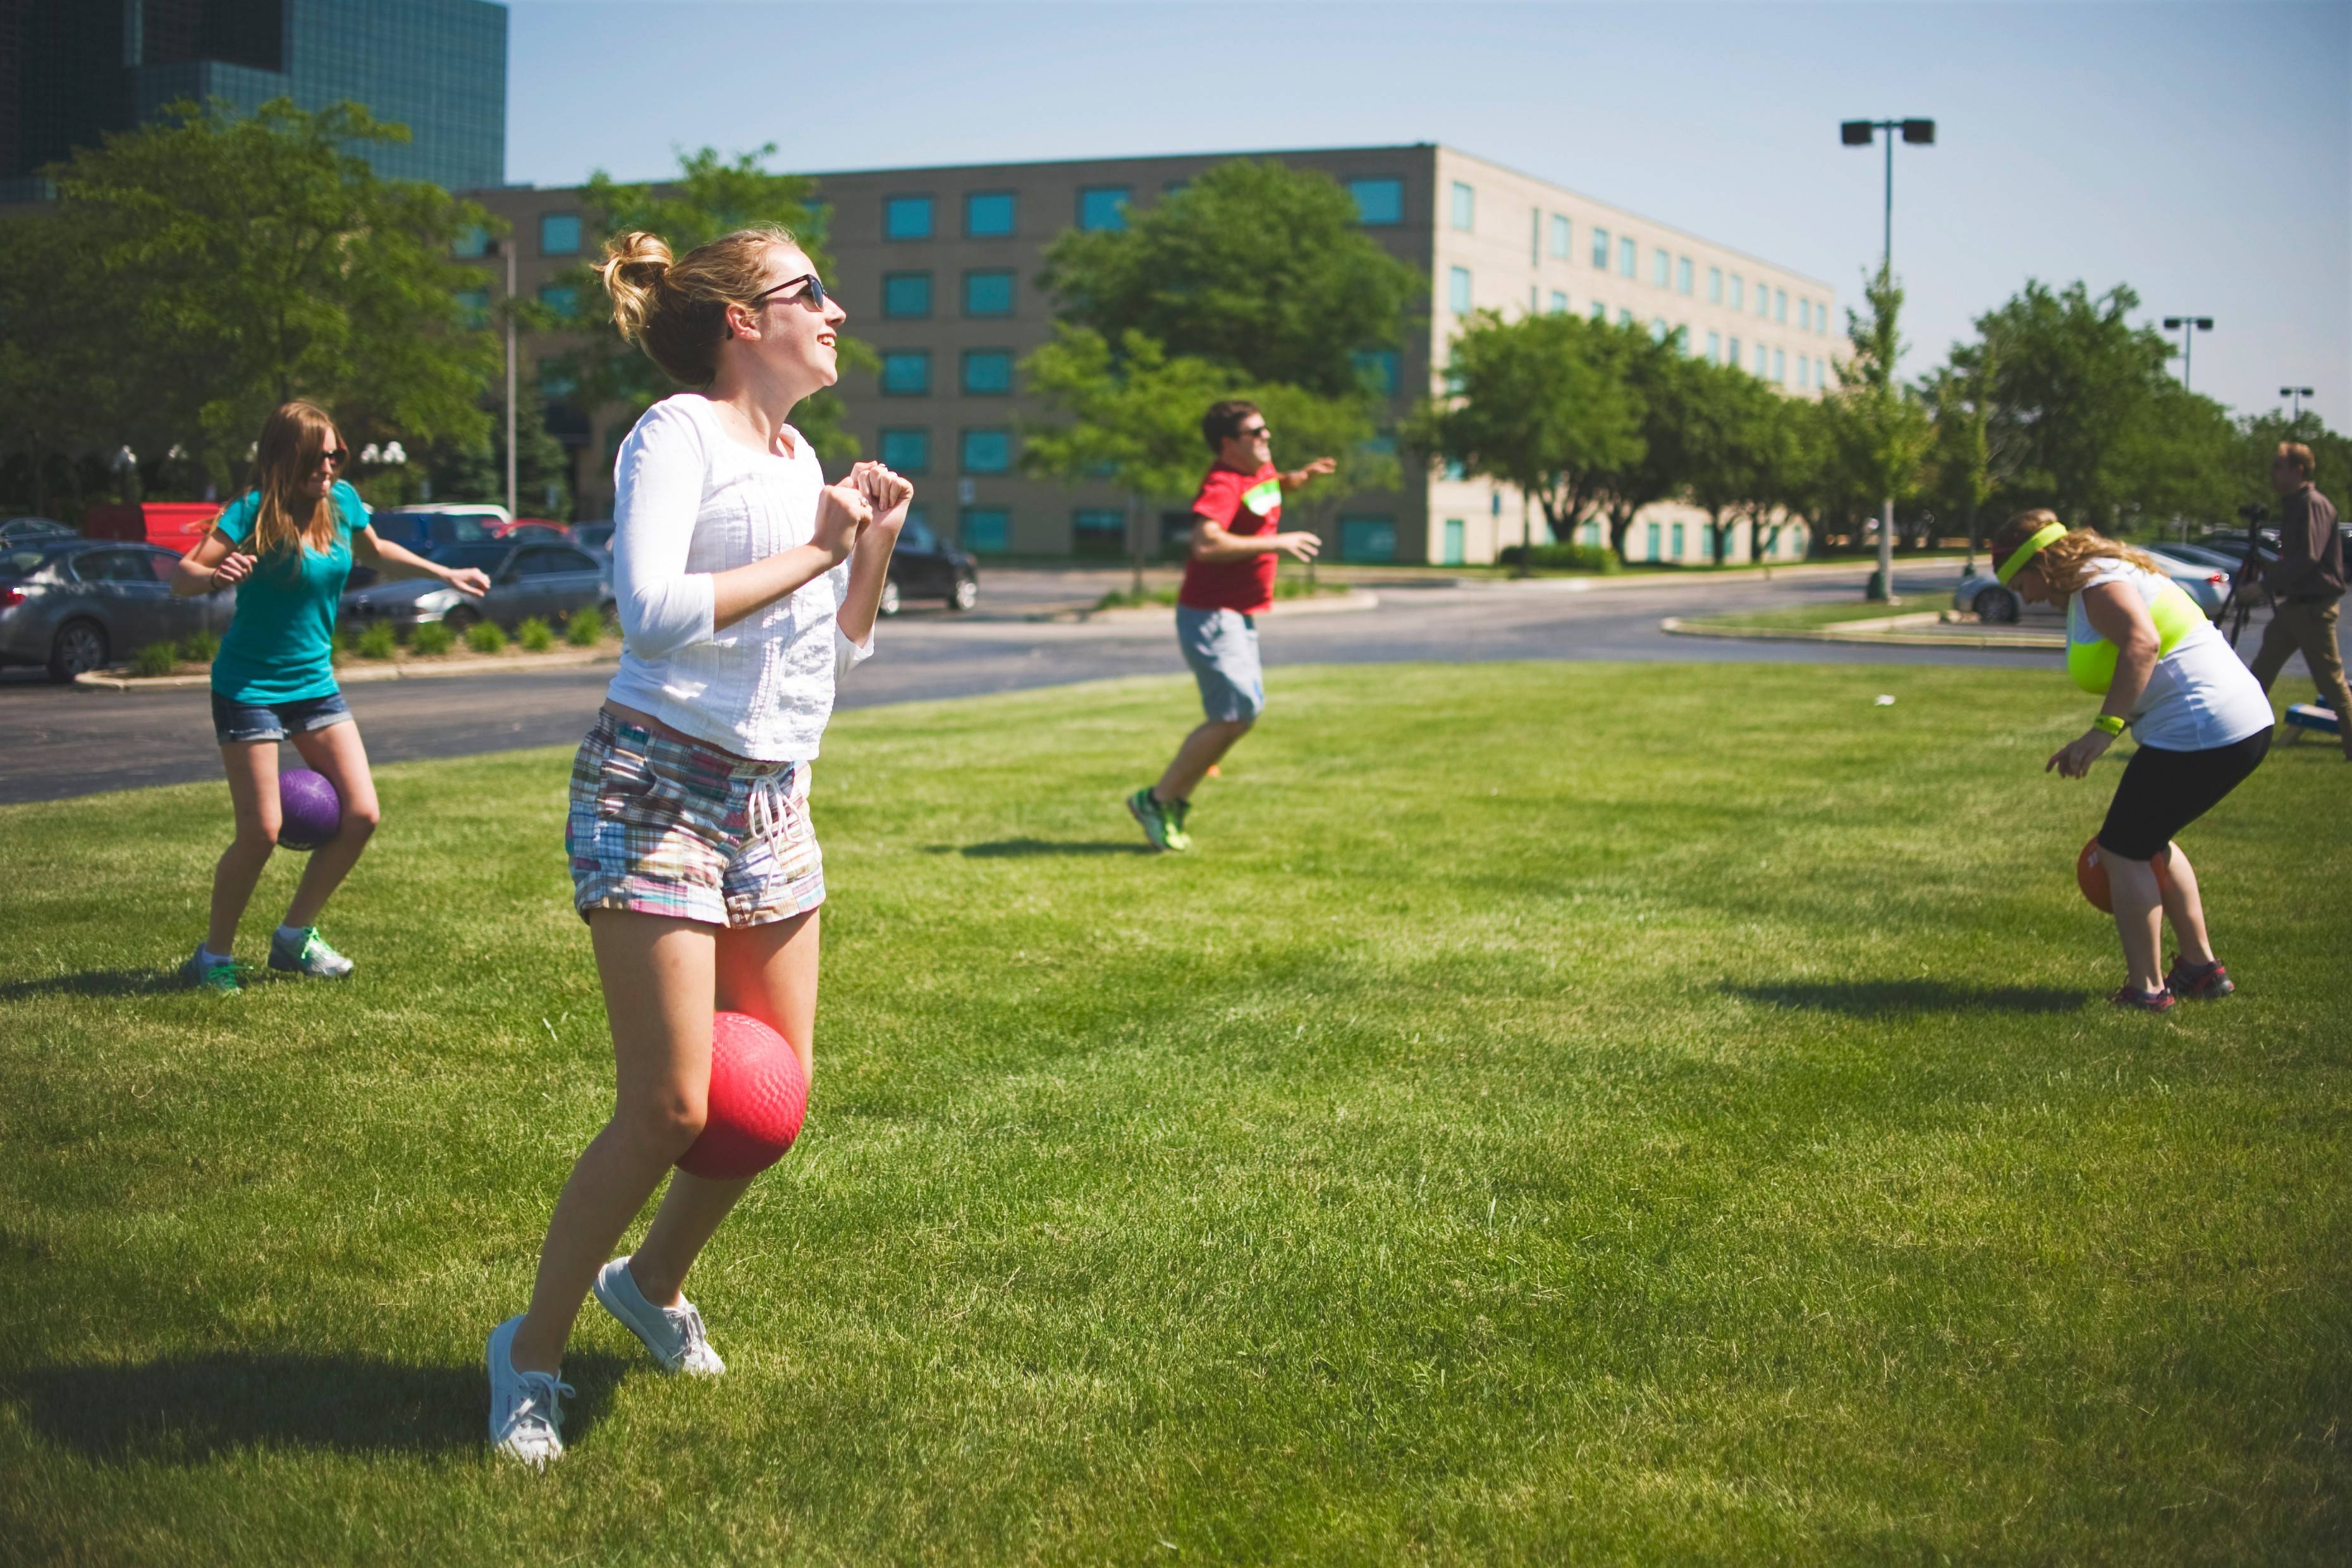 Sarah Bump, marketing events coordinator, and other Assurance employees enjoy a few, fun bursts of aerobic exertion outside of their cubicles in Schaumburg.